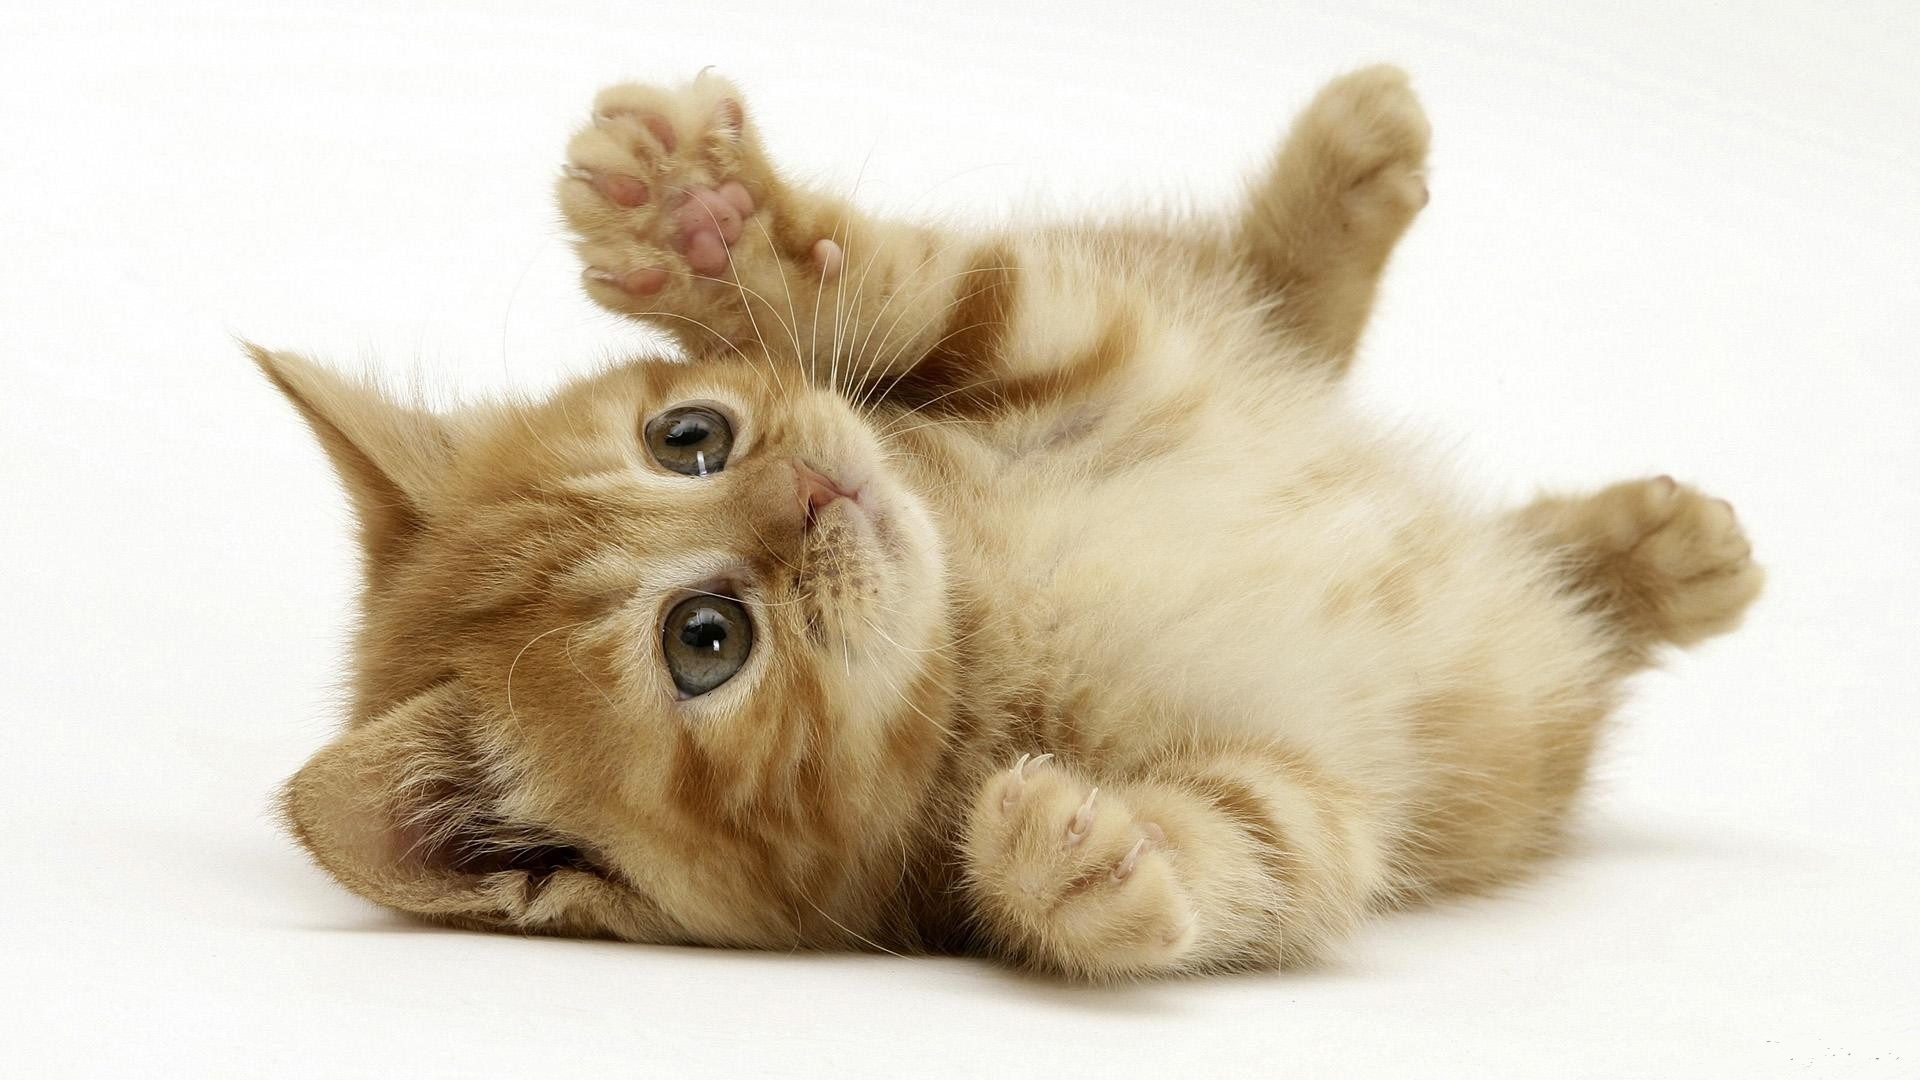 Beautiful Little Cat free hd wallpapers HD Wallpaper